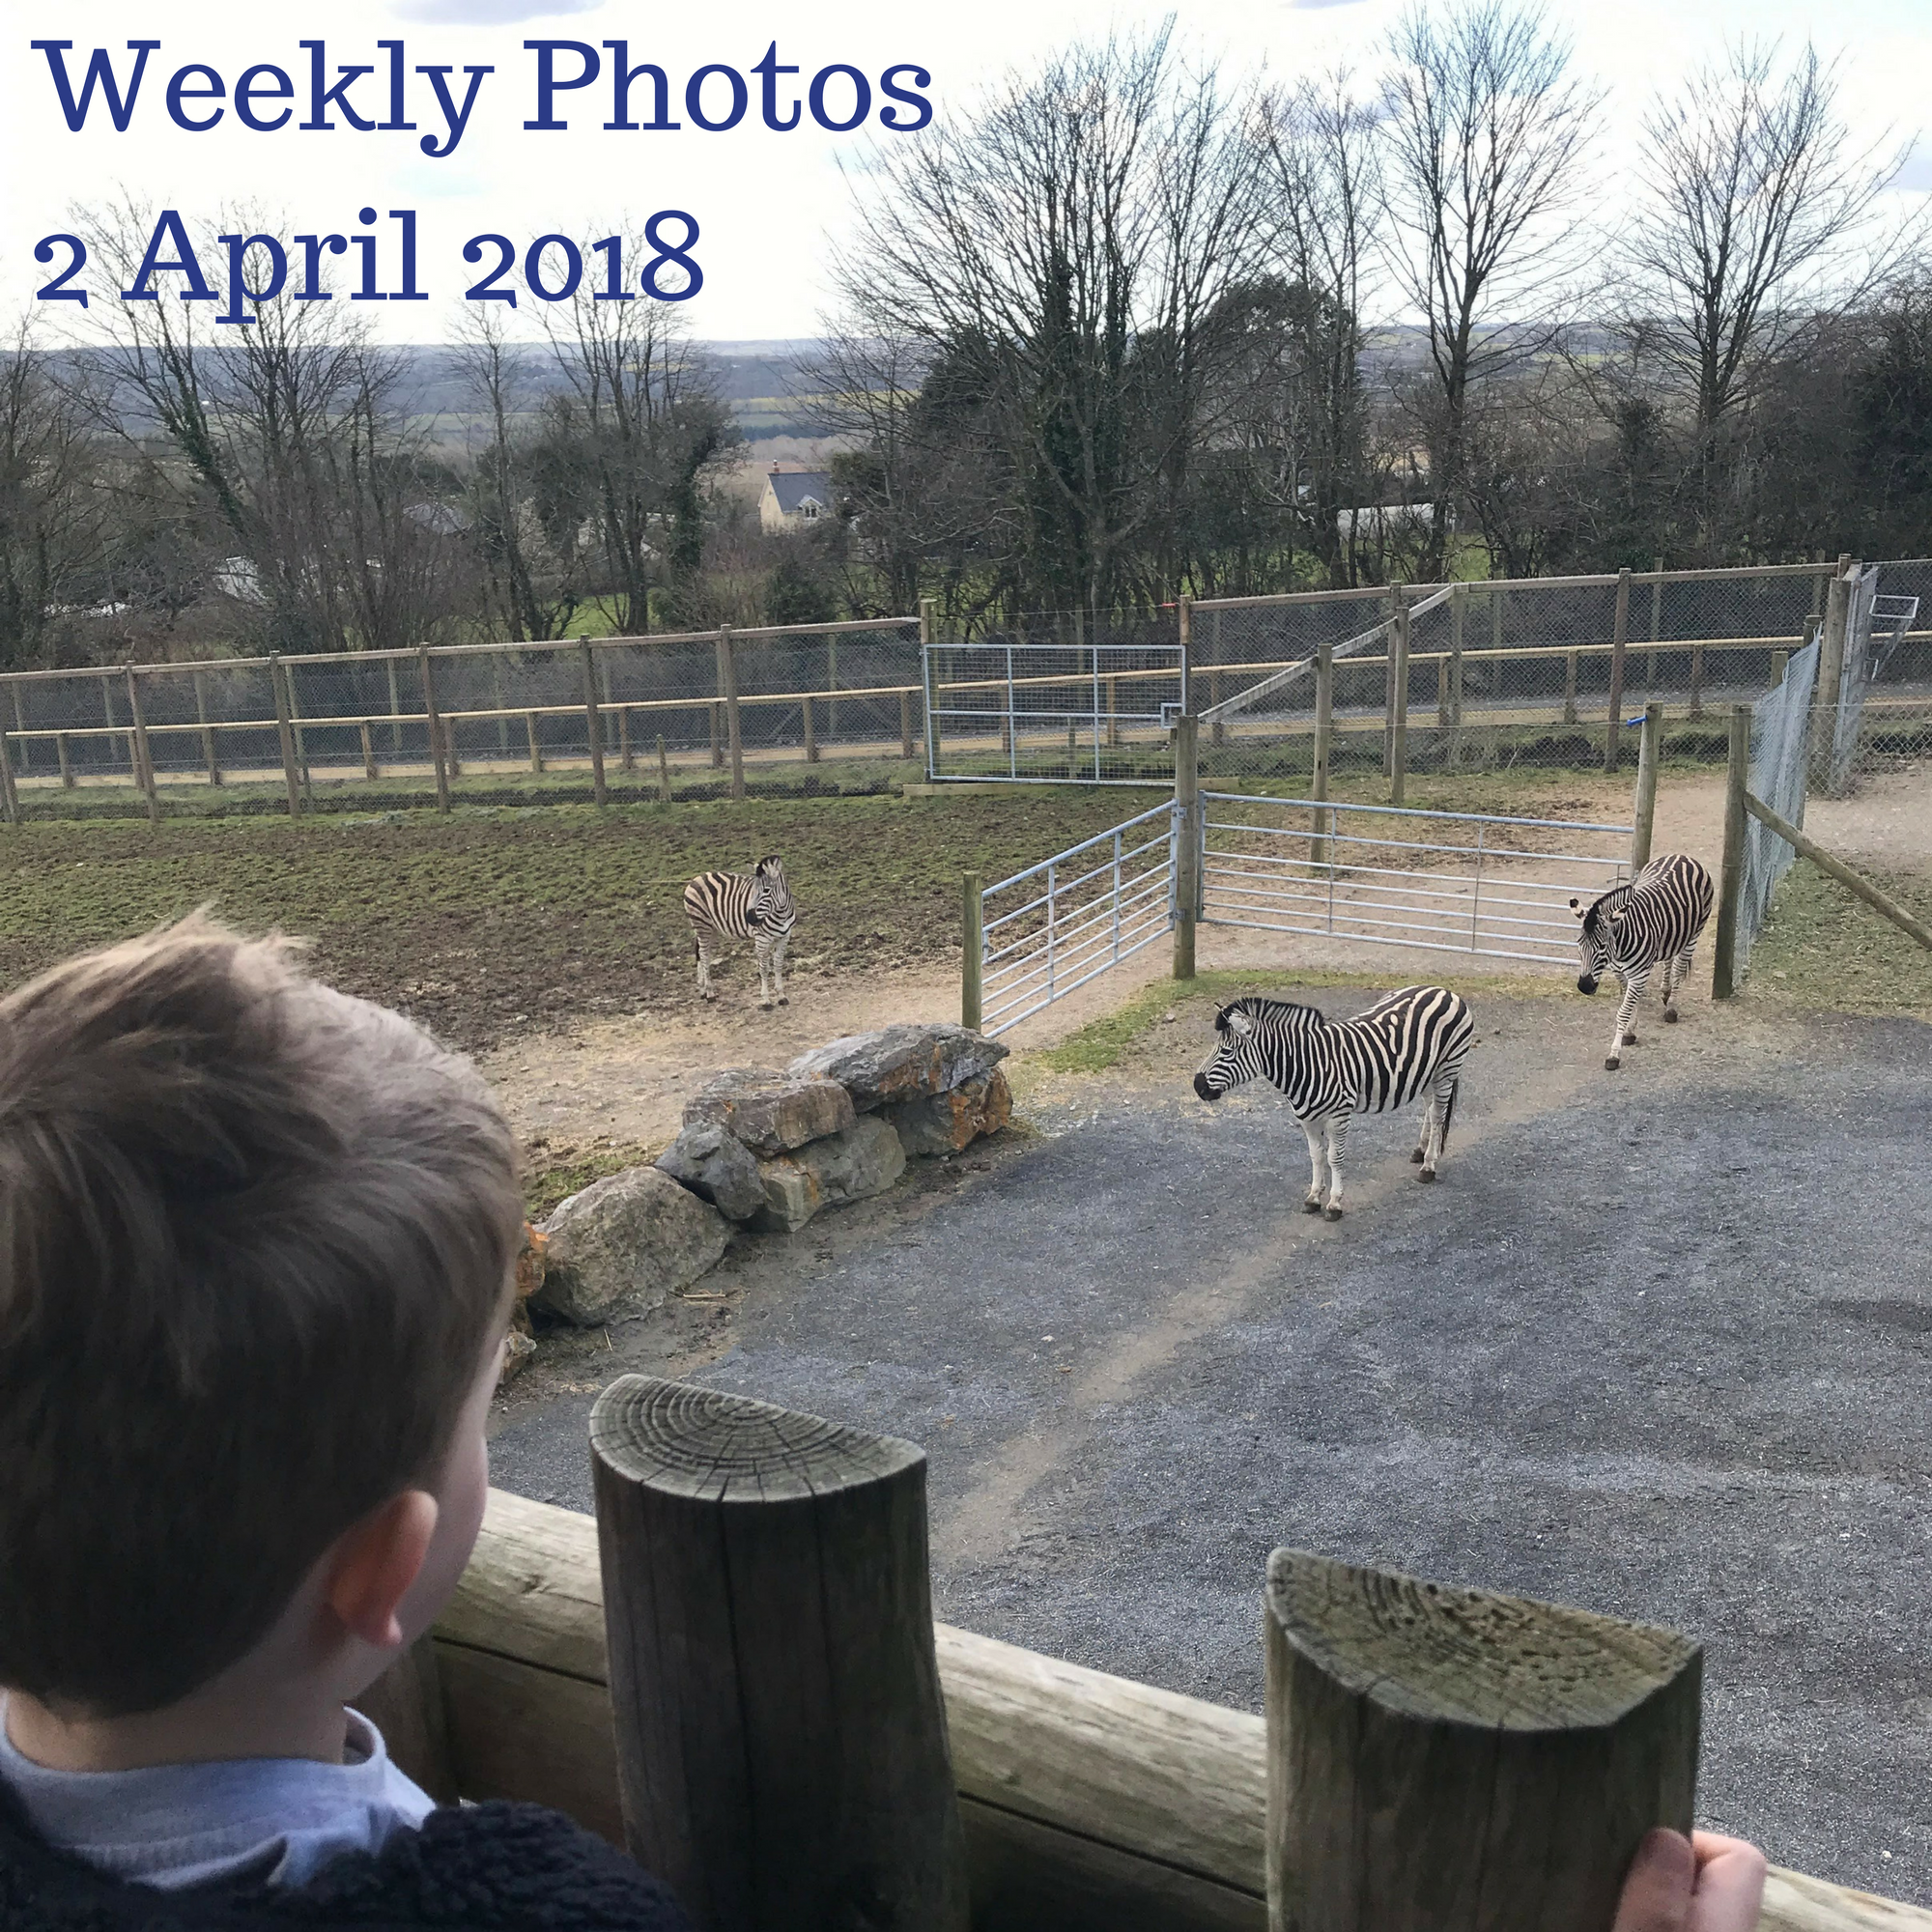 Weekly Photos 2 April 2018